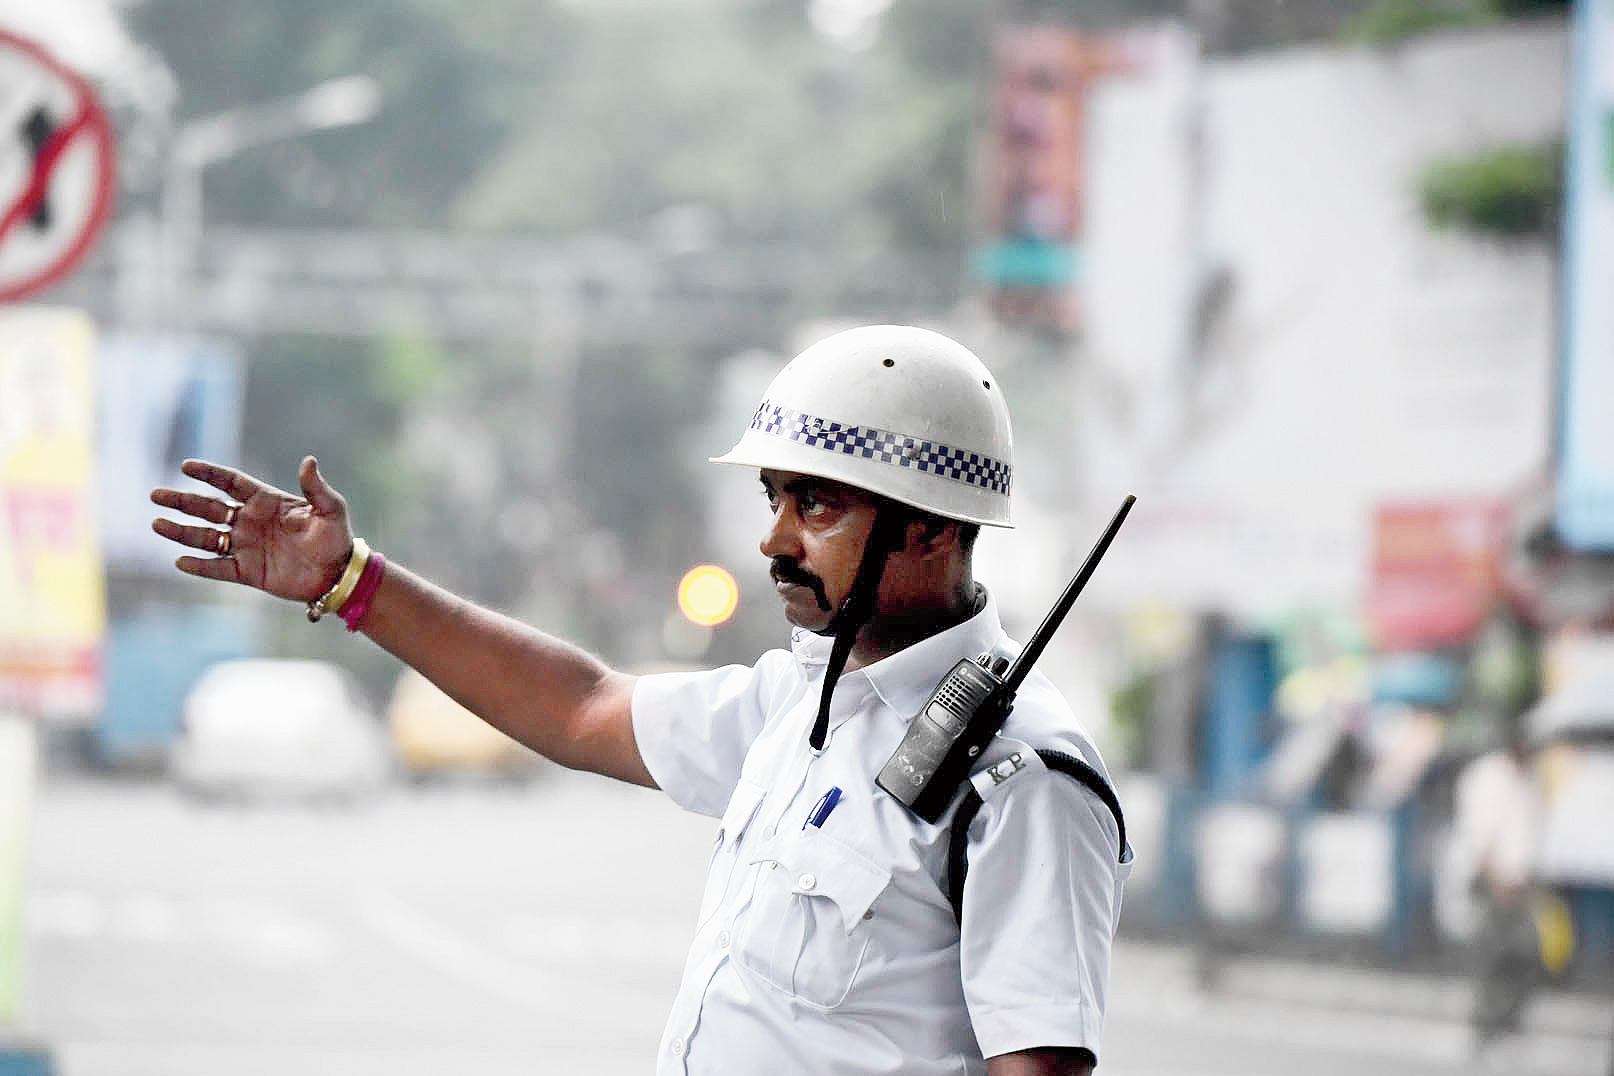 Constable Arup Mukherjee manages traffic at an intersection in the city.